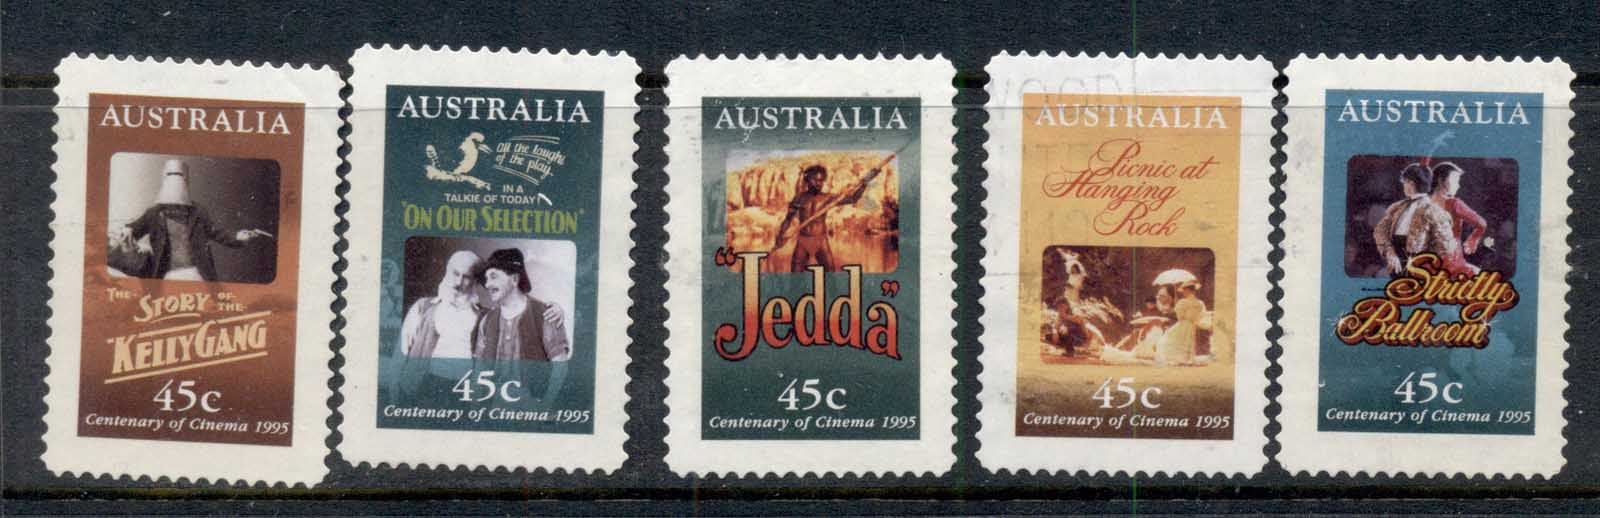 Australia 1995 Centenary of the Cinema P&S FU